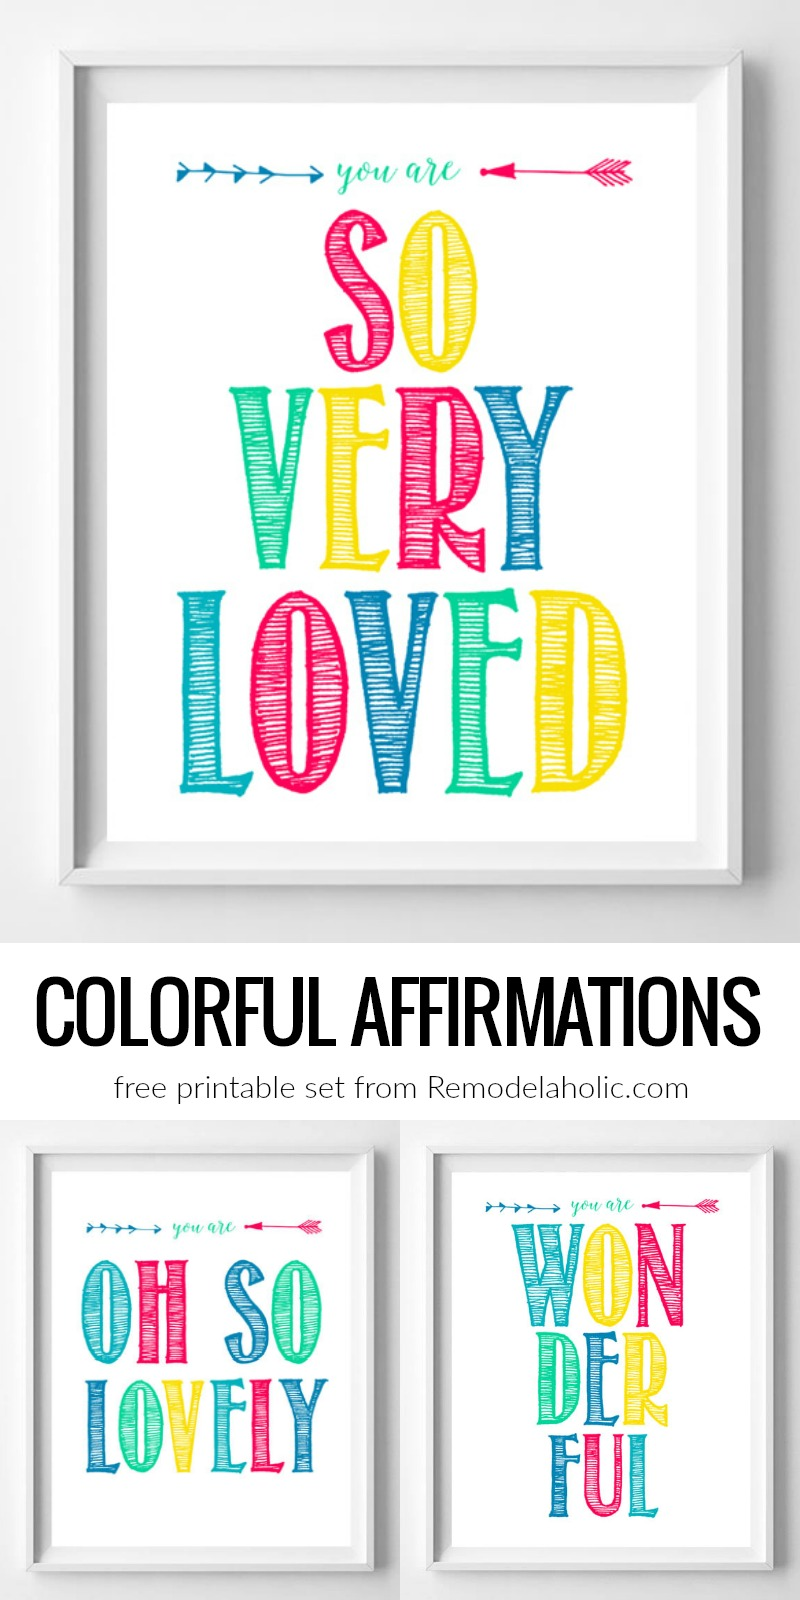 Remodelaholic | You Are Loved: Colorful Inspirational ...